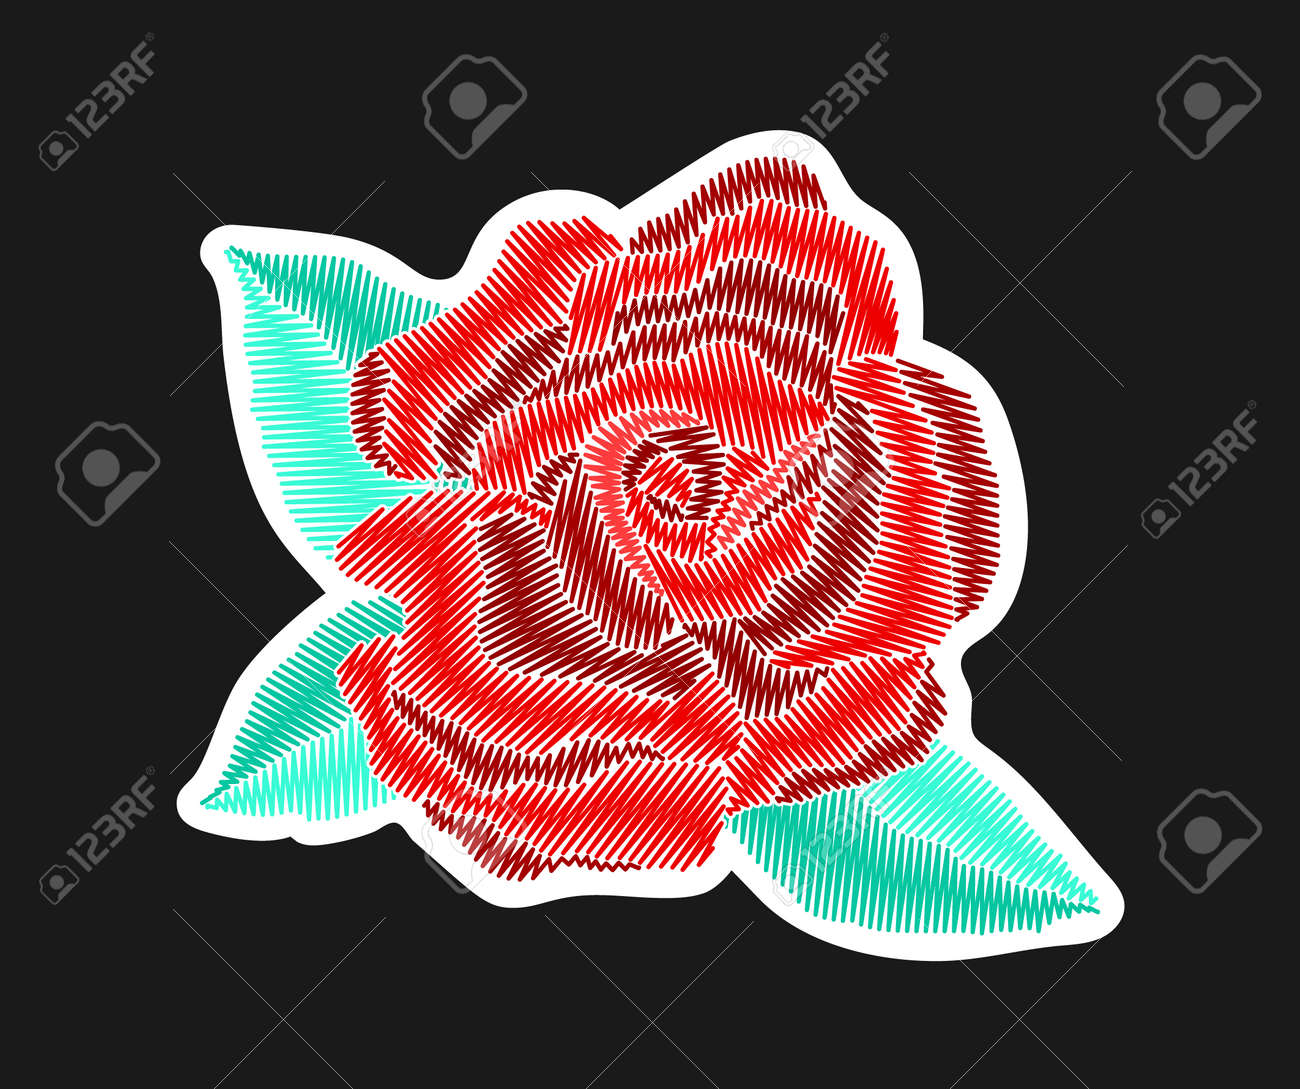 Red Rose Flower With Leaves Embroidered Patch Design Needlework